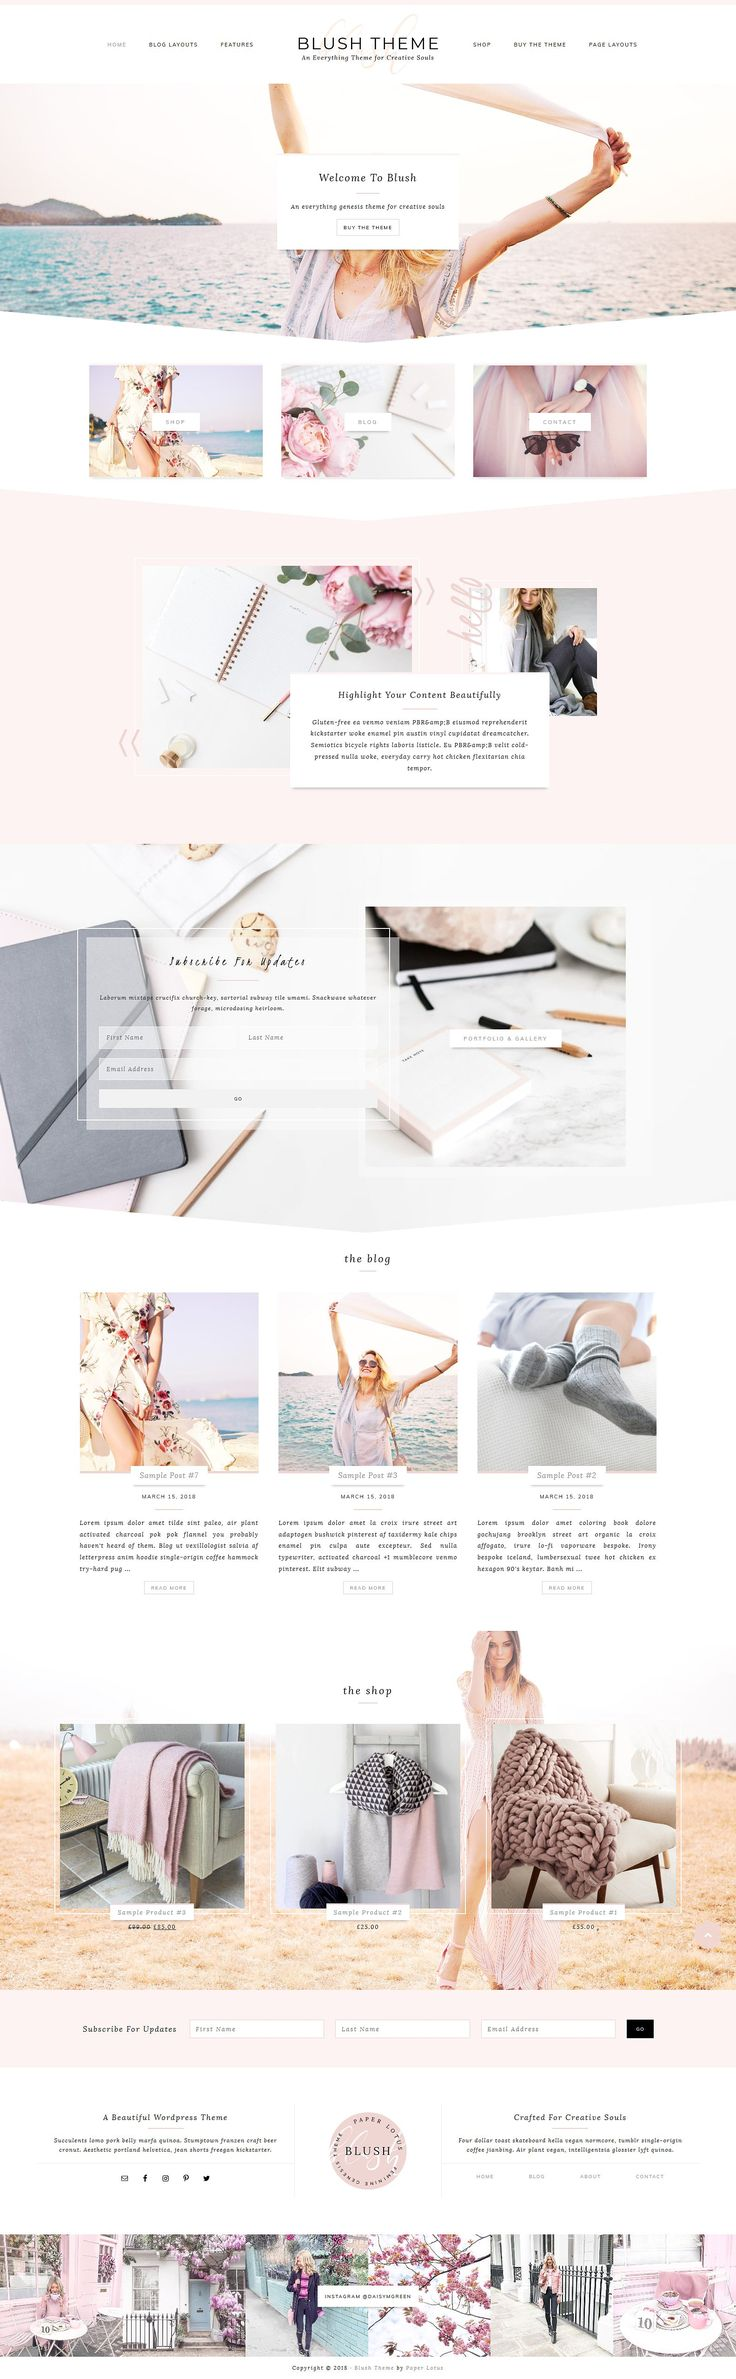 Blush – Feminine Genesis Theme by Paper Lotus on Creative Market #AD